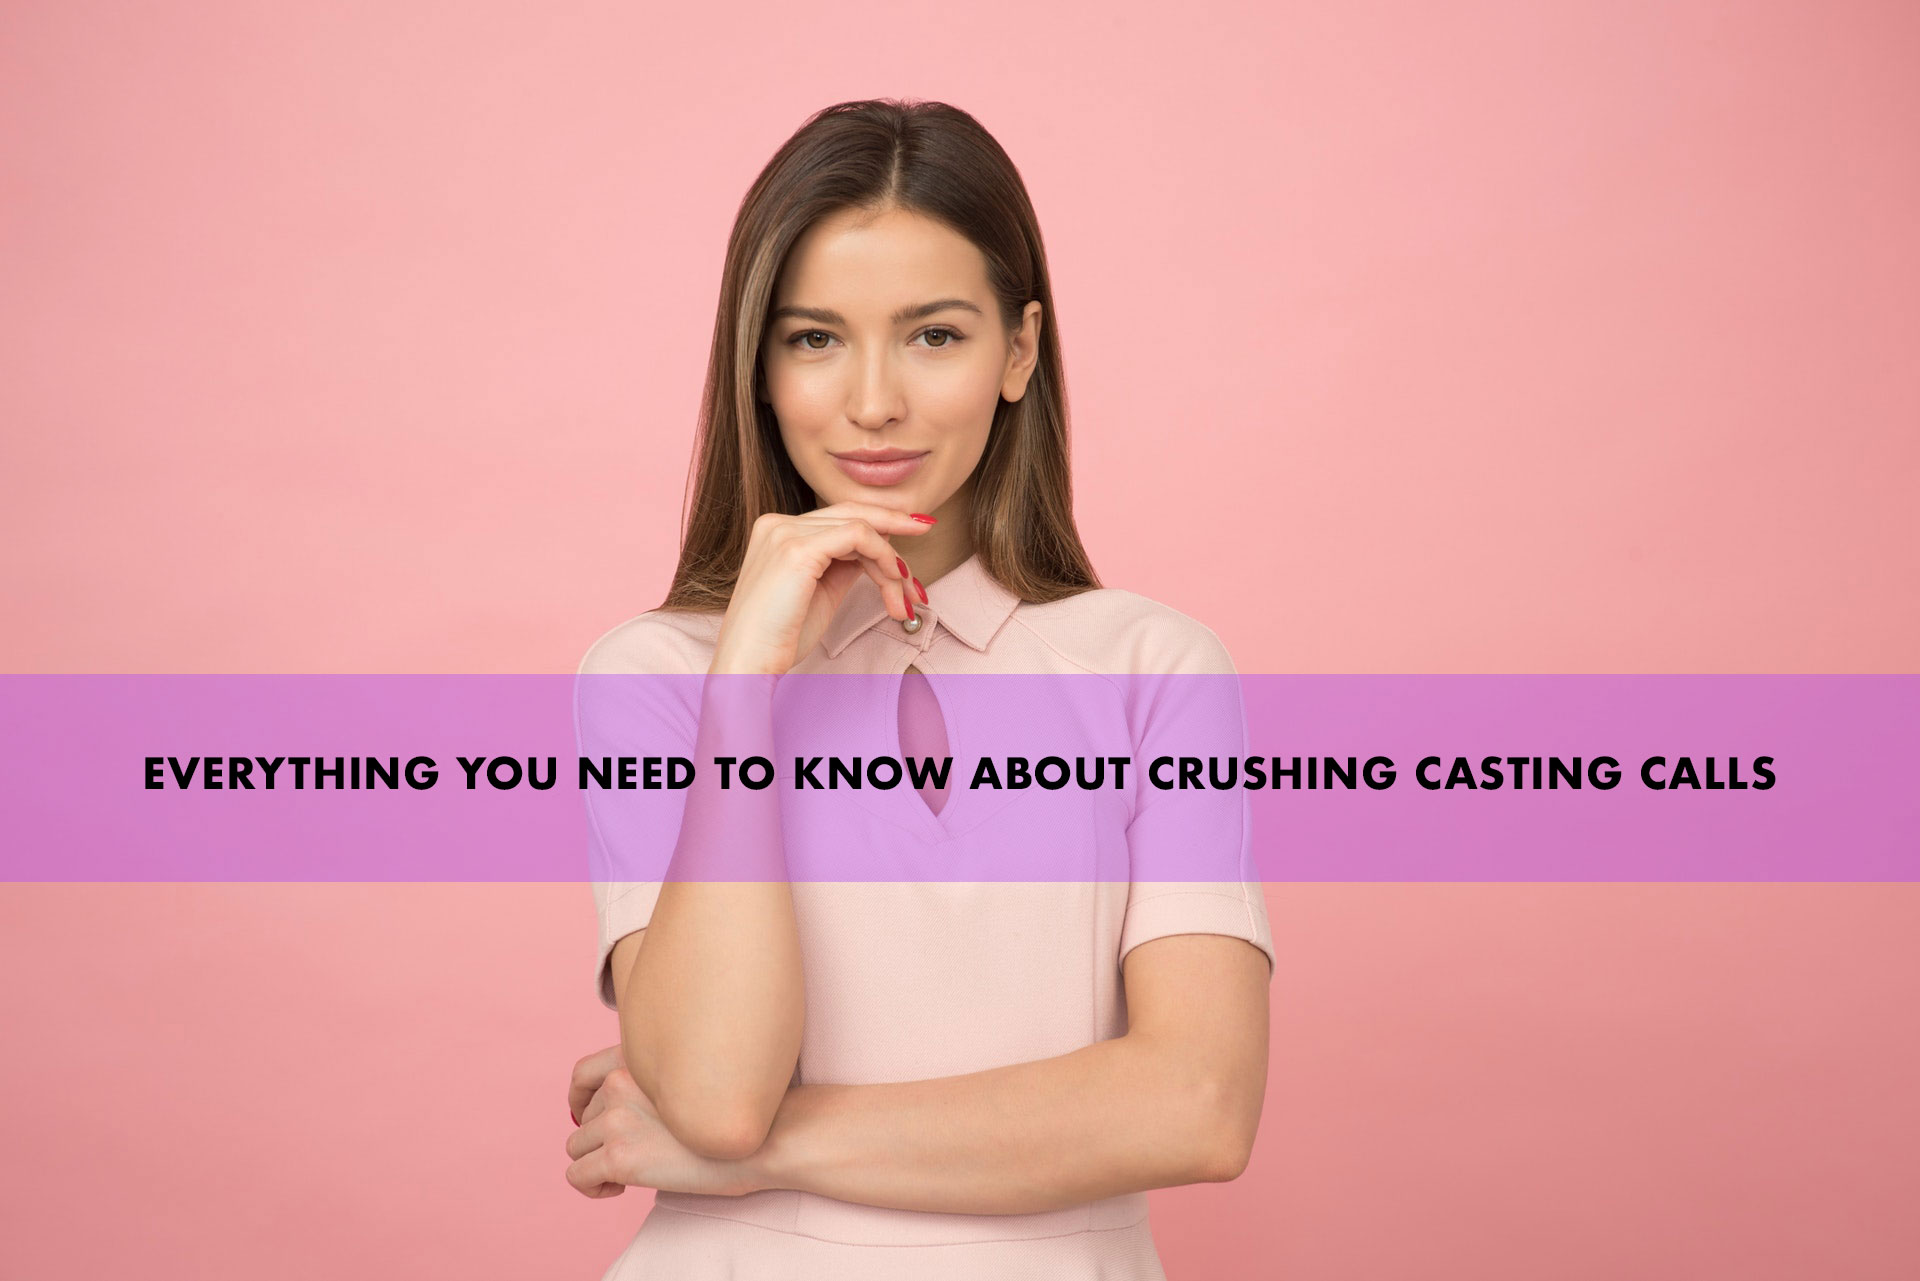 Everything You Need to Know About Crushing Casting Calls